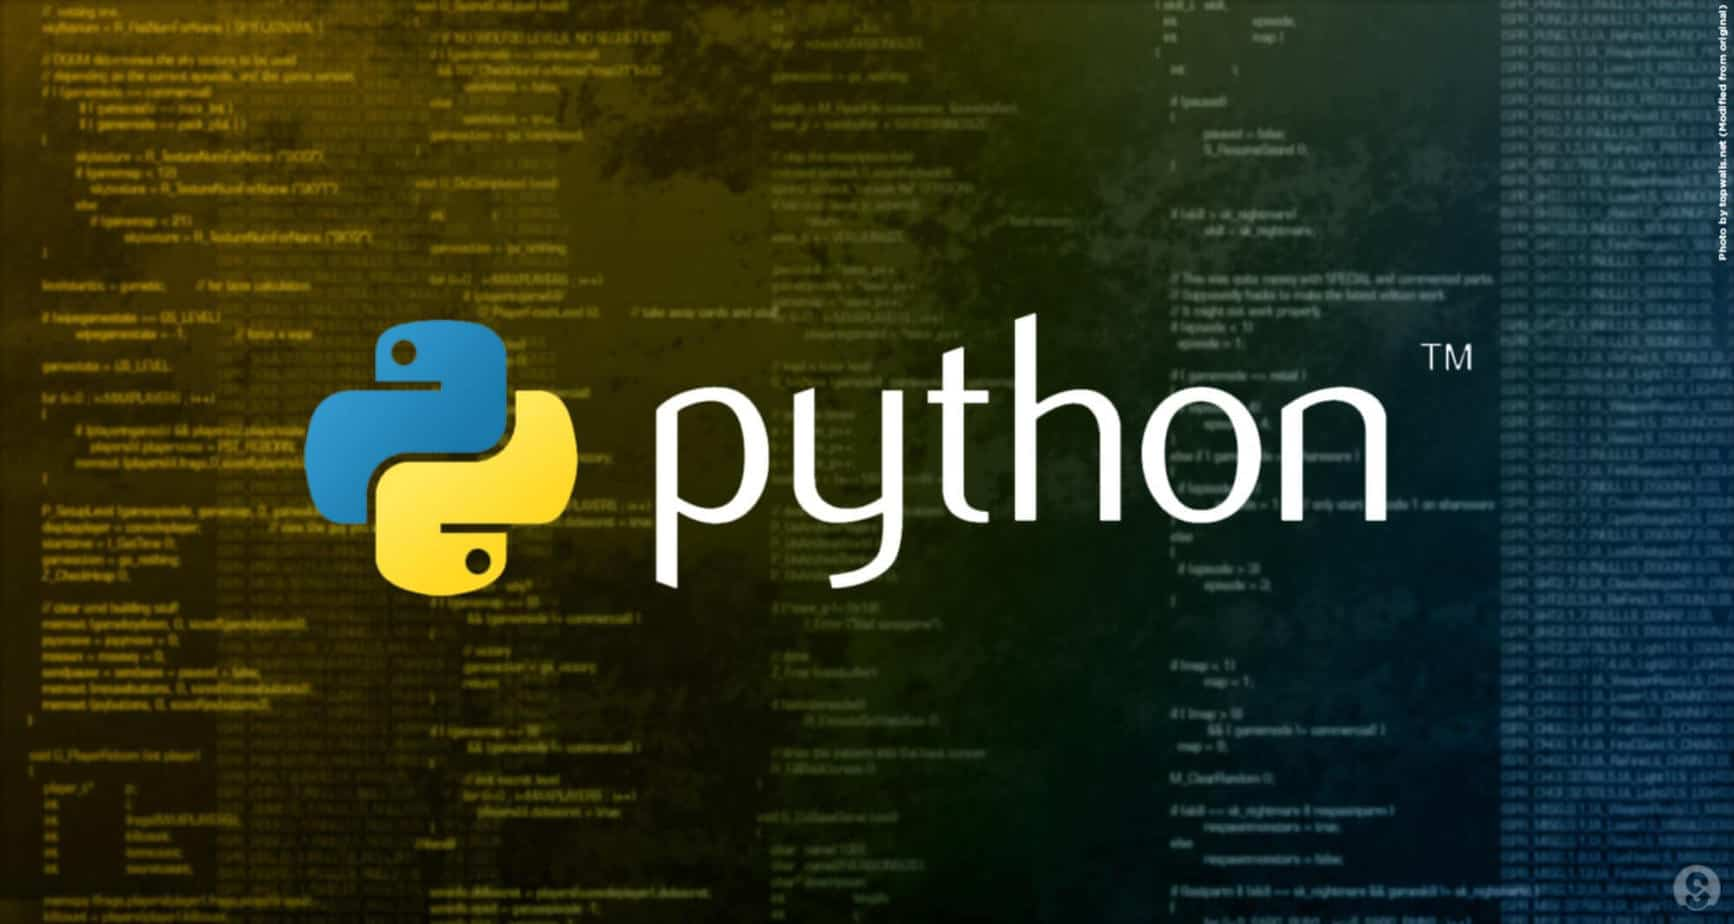 Learn Python With This 2021 Premium Python Certification Bootcamp Bundle